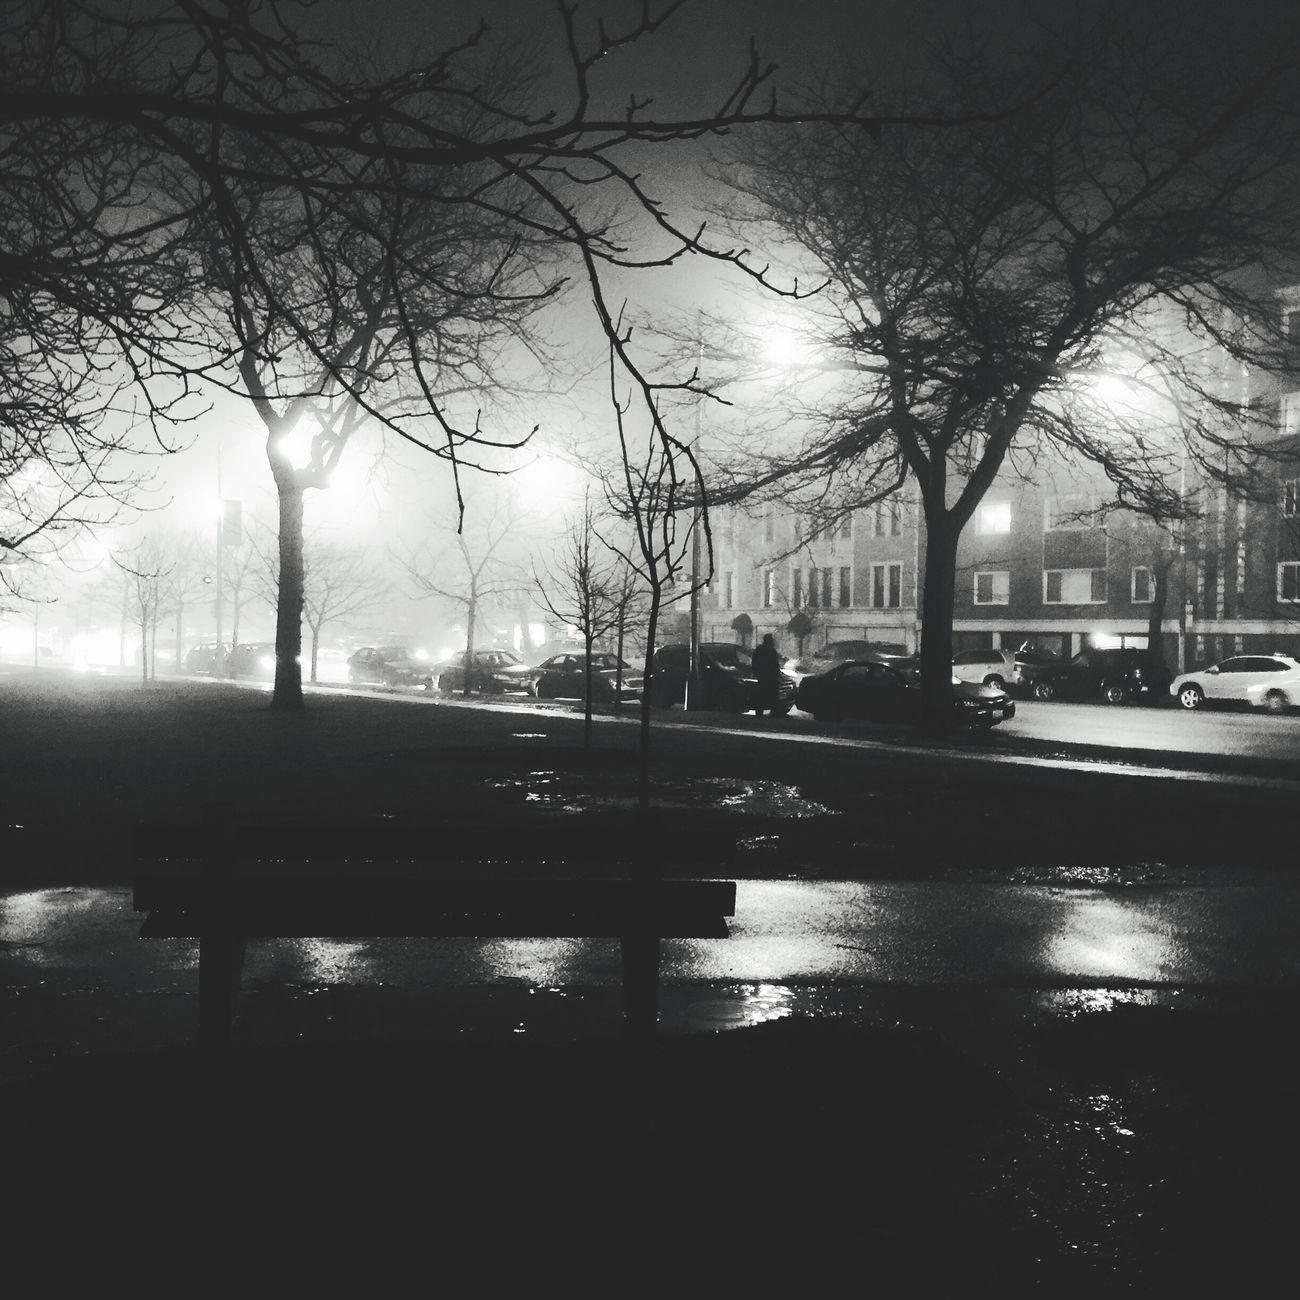 It was a foggy January night in Rogers Park Chicago Tree Bare Tree Car Reflection Street Road Fog City Nature No People Outdoors Foggy Blackandwhite Blackandwhite Photography Rogers Park Chicago Illinois Streetphotography Streetlights